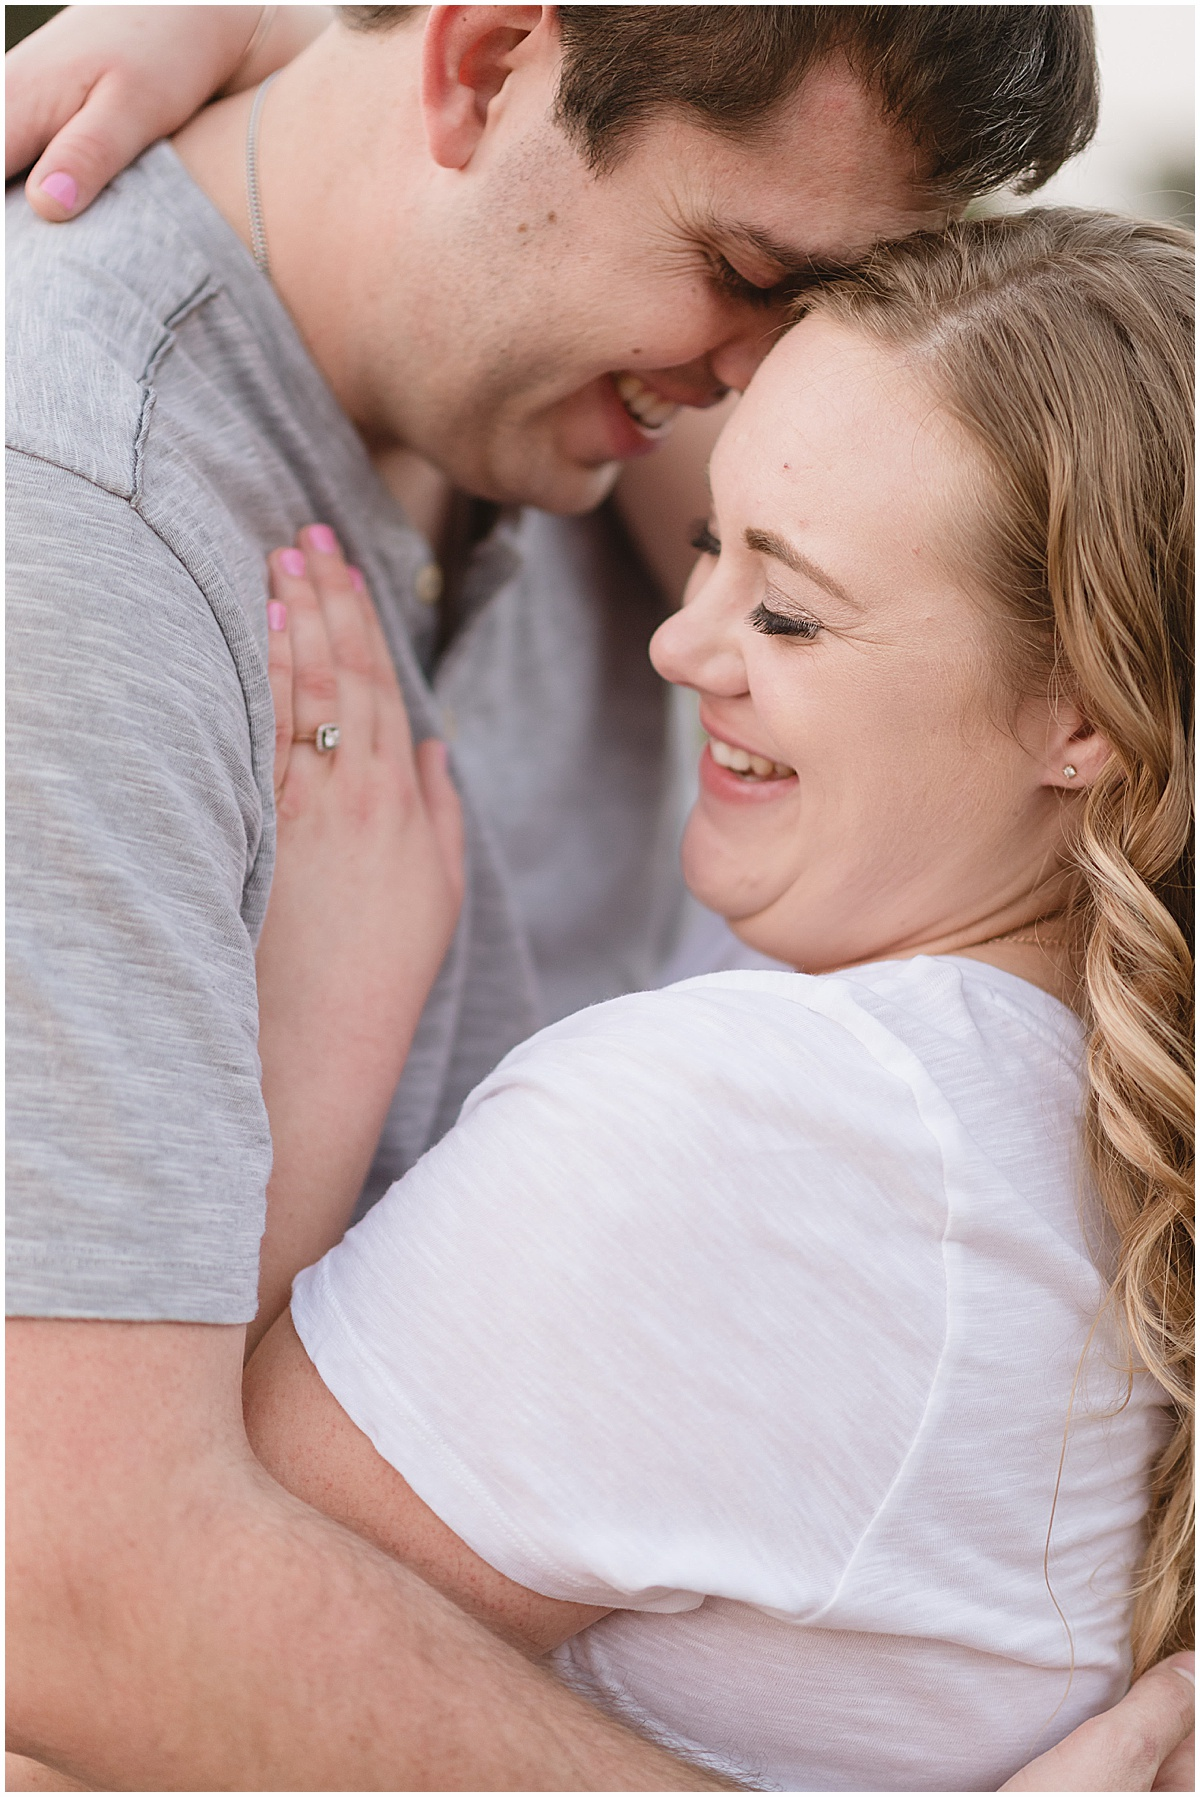 Fortino Winery Engagement Session with Ashley and Stephen in Gilroy, California by Jen Vazquez Photography